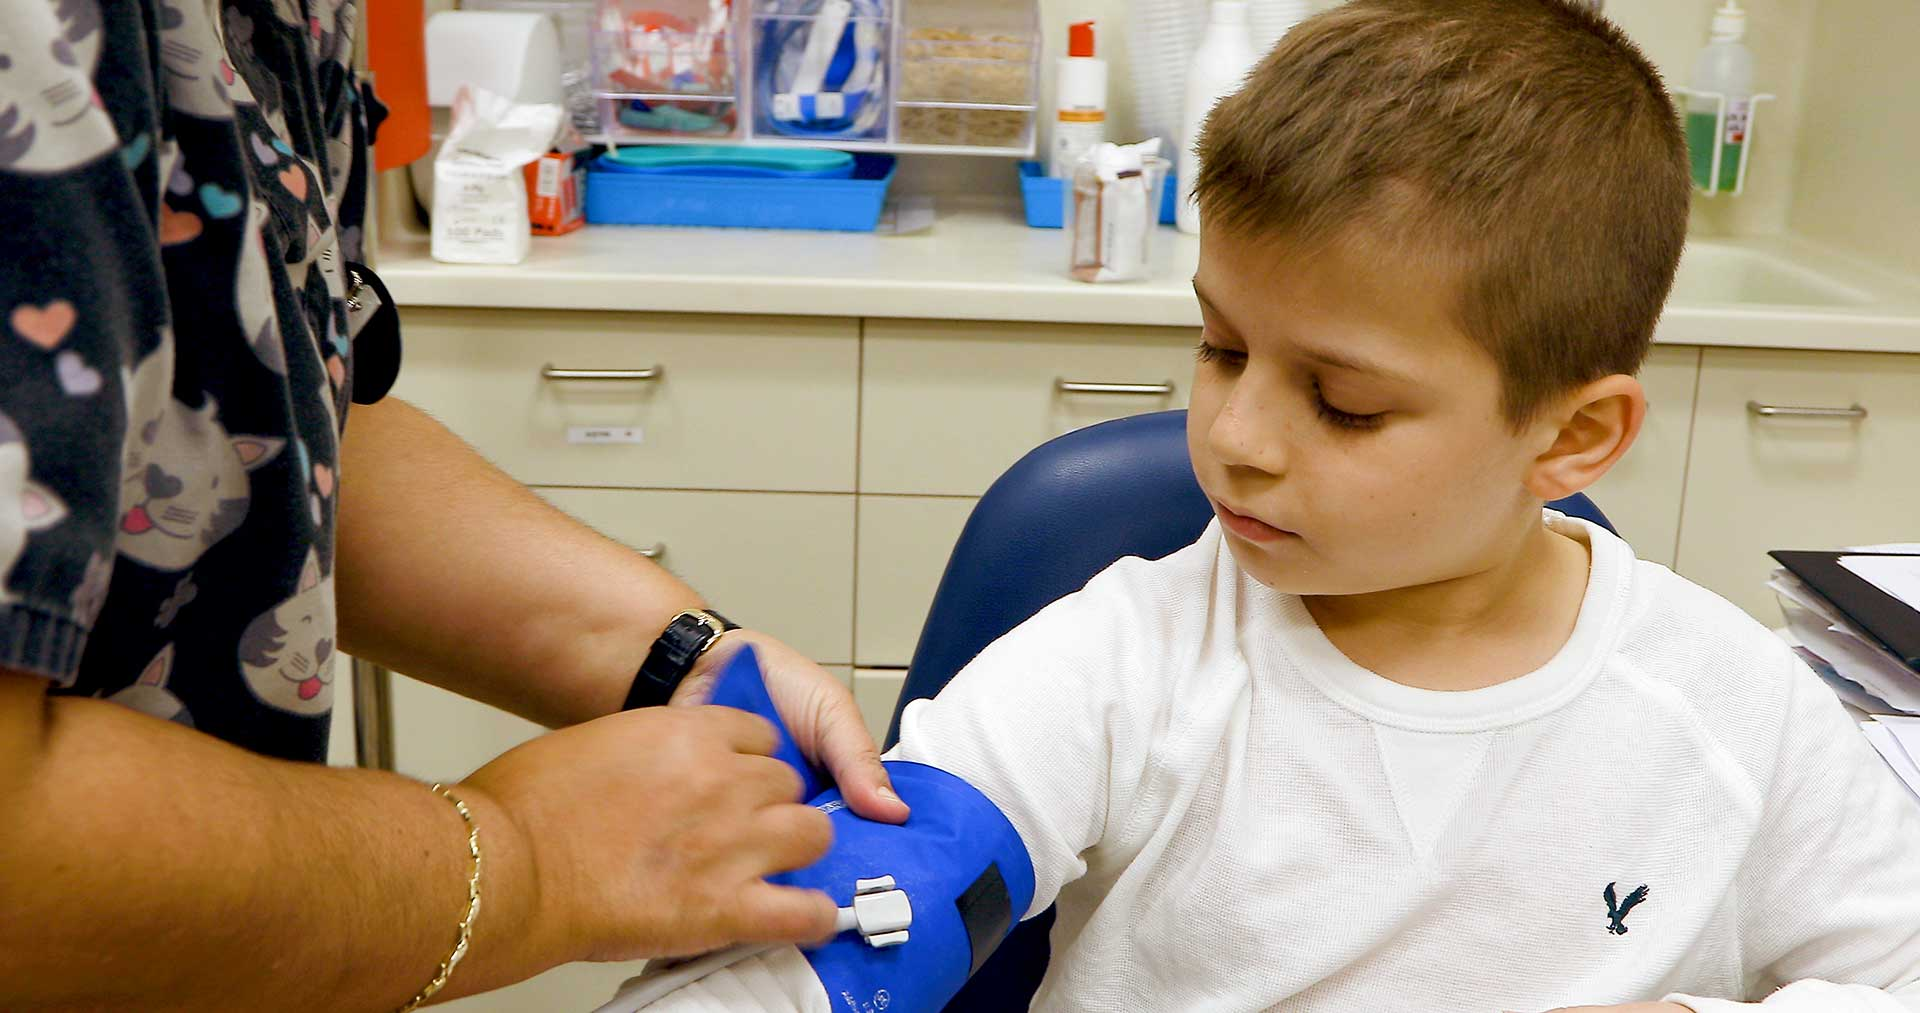 About Children's Health Alliance for Israel